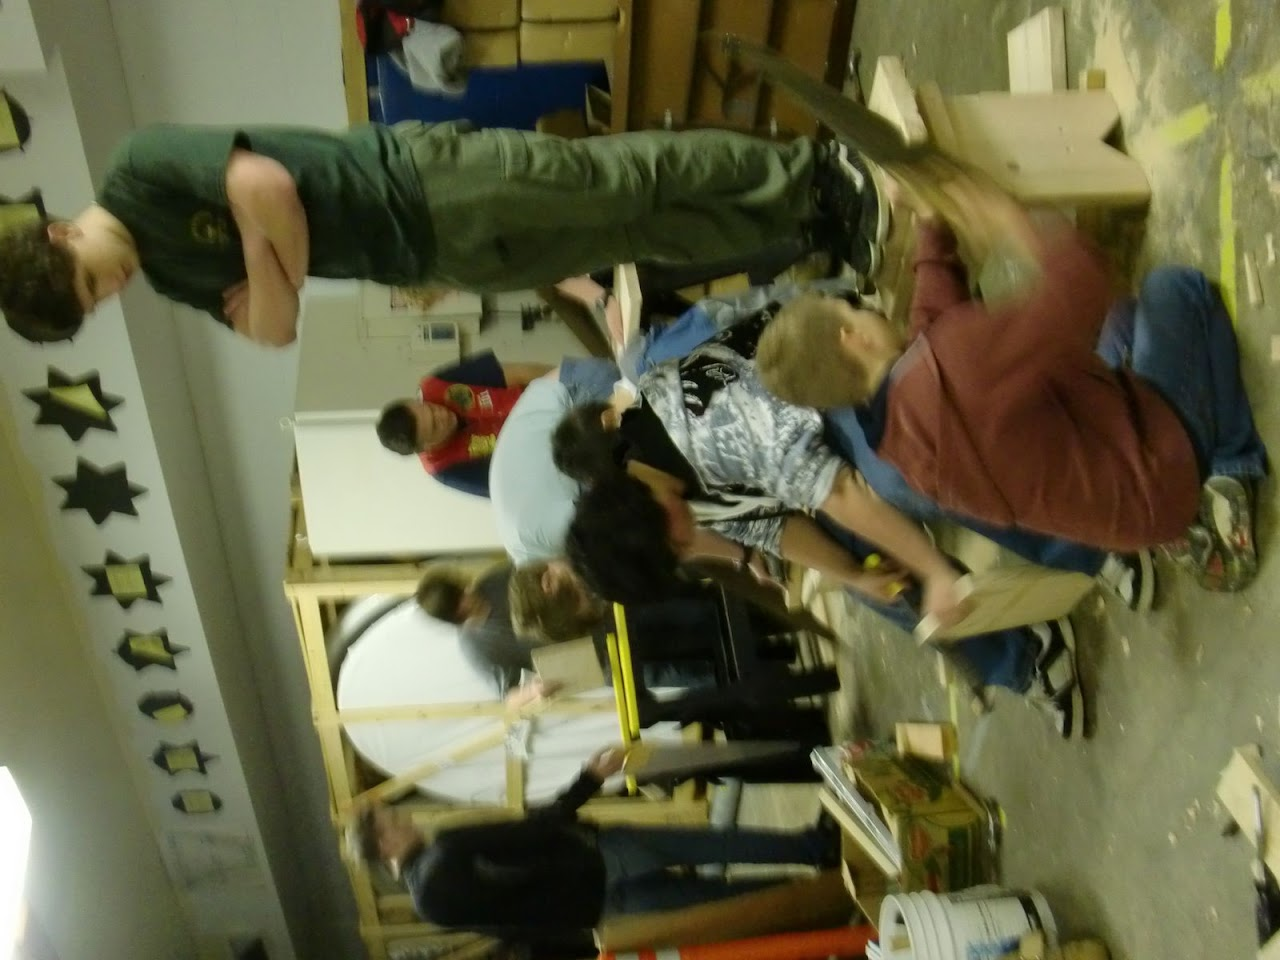 Carpentry Merit Badge Sessions - CIMG1152.JPG